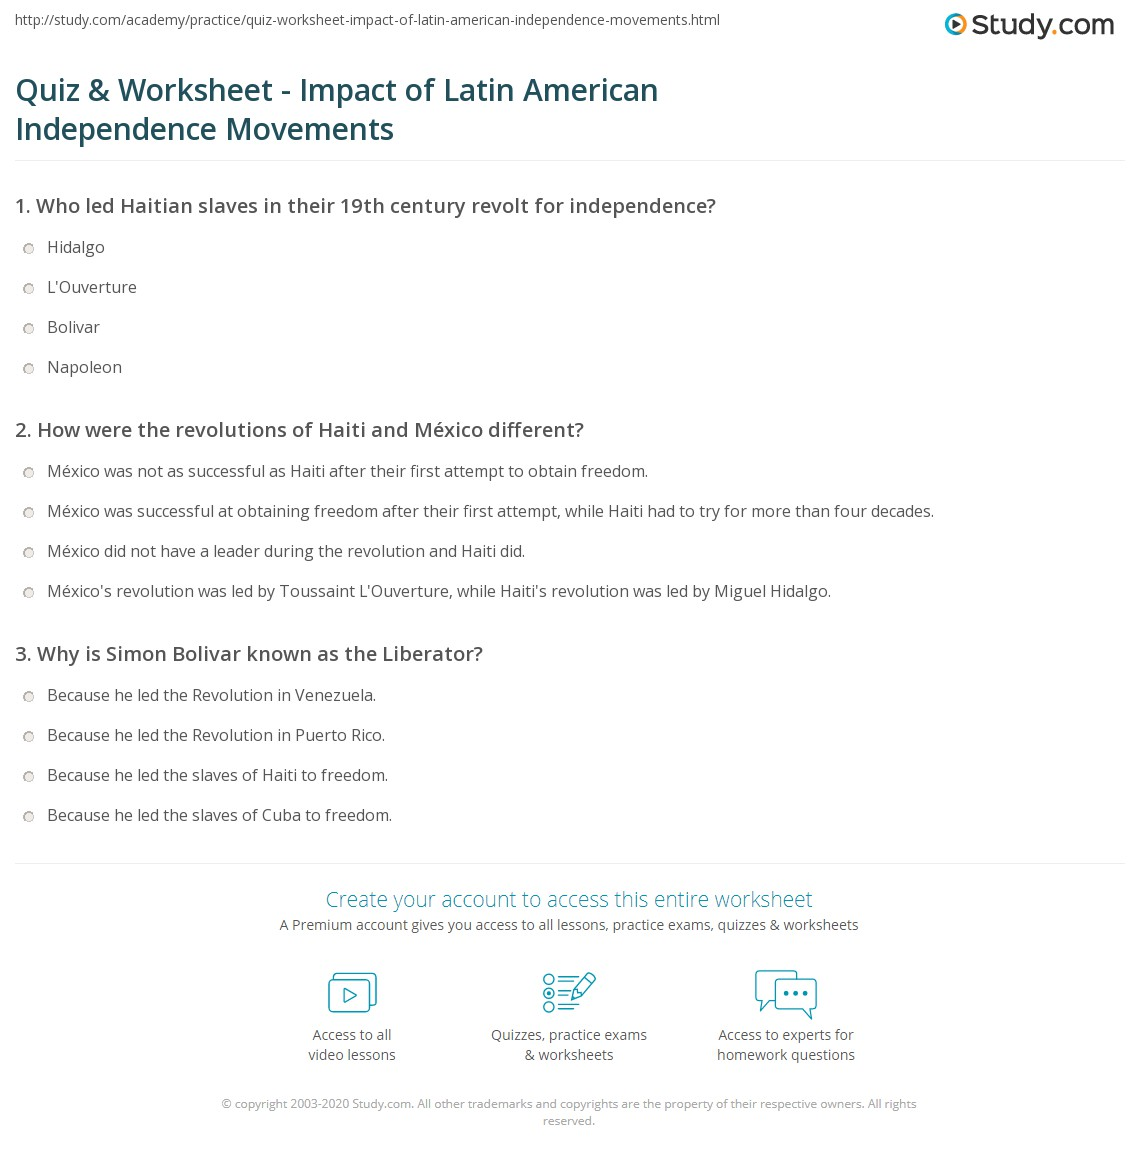 Weirdmailus  Pleasant Quiz Amp Worksheet  Impact Of Latin American Independence Movements  With Inspiring Print Independence Movements In Latin America Examples Amp Impact Worksheet With Adorable Draw Angles Worksheet Also Counting Worksheet Preschool In Addition Adding Fractions With The Same Denominator Worksheets And Beginning Consonant Sounds Worksheet As Well As Free Printable Worksheets For St Grade Math Additionally American Government Worksheet From Studycom With Weirdmailus  Inspiring Quiz Amp Worksheet  Impact Of Latin American Independence Movements  With Adorable Print Independence Movements In Latin America Examples Amp Impact Worksheet And Pleasant Draw Angles Worksheet Also Counting Worksheet Preschool In Addition Adding Fractions With The Same Denominator Worksheets From Studycom